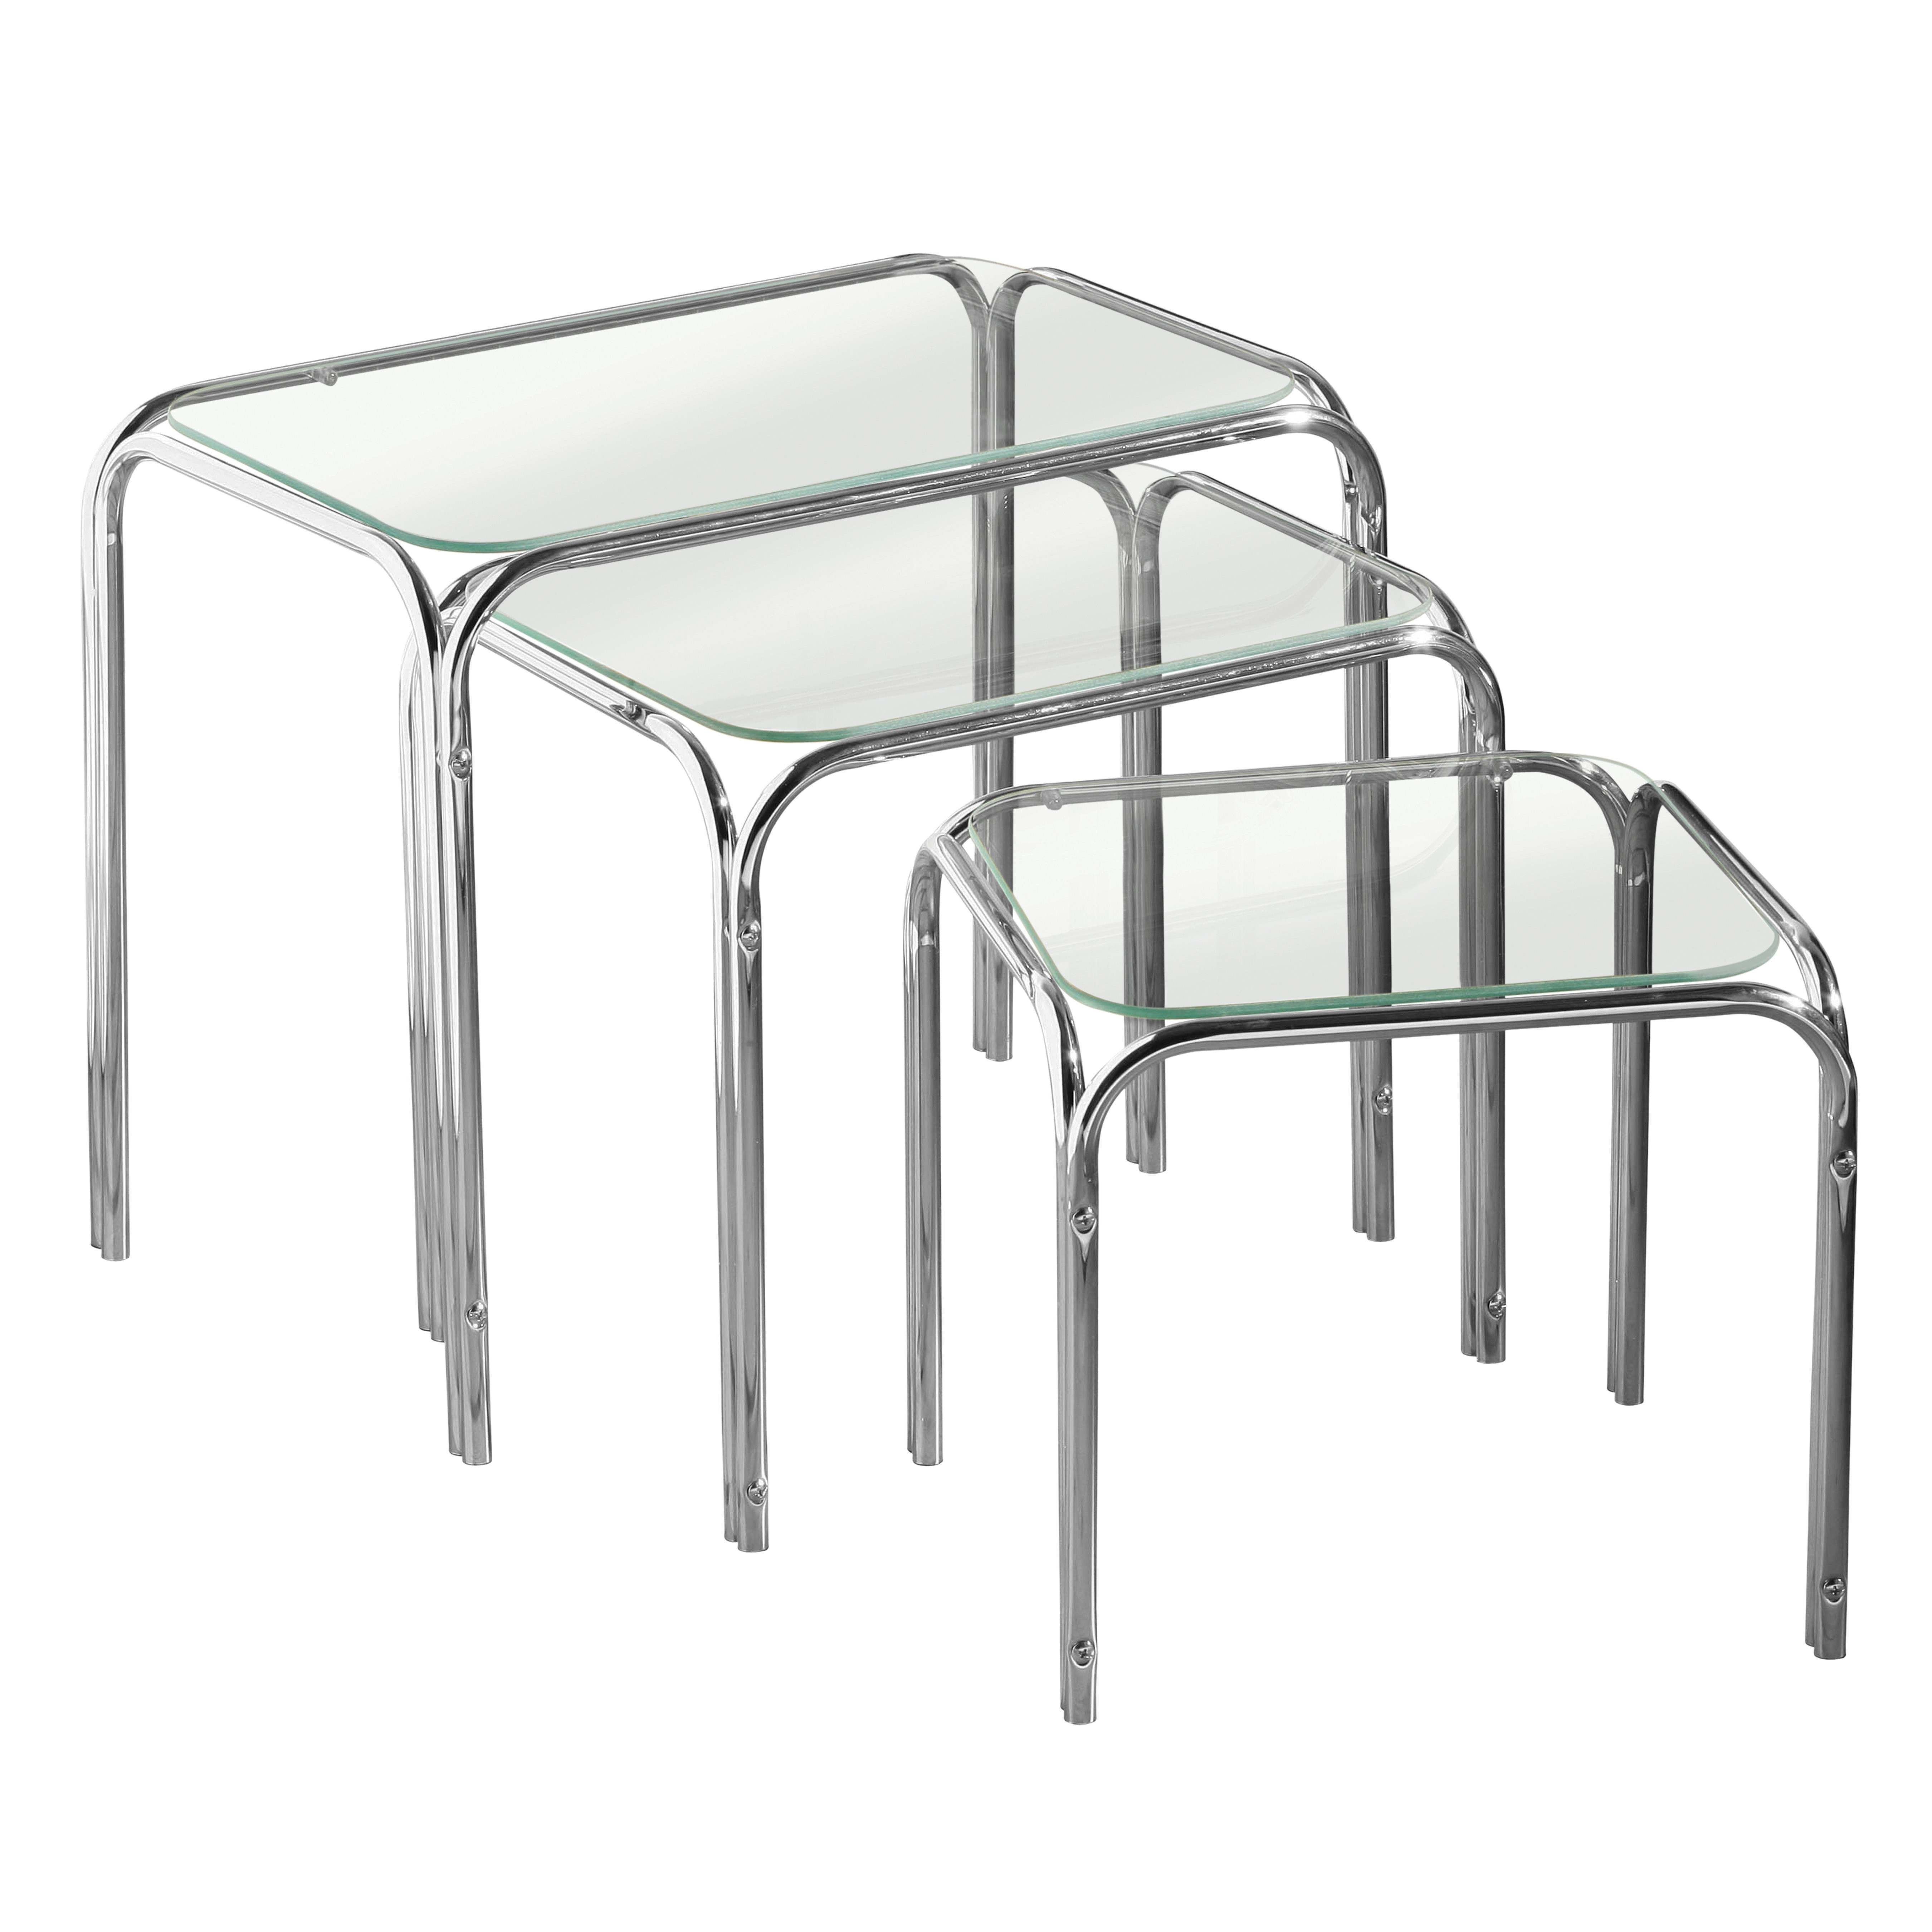 Nest of 3 Tables, Clear Glass, Chrome Finish Legs